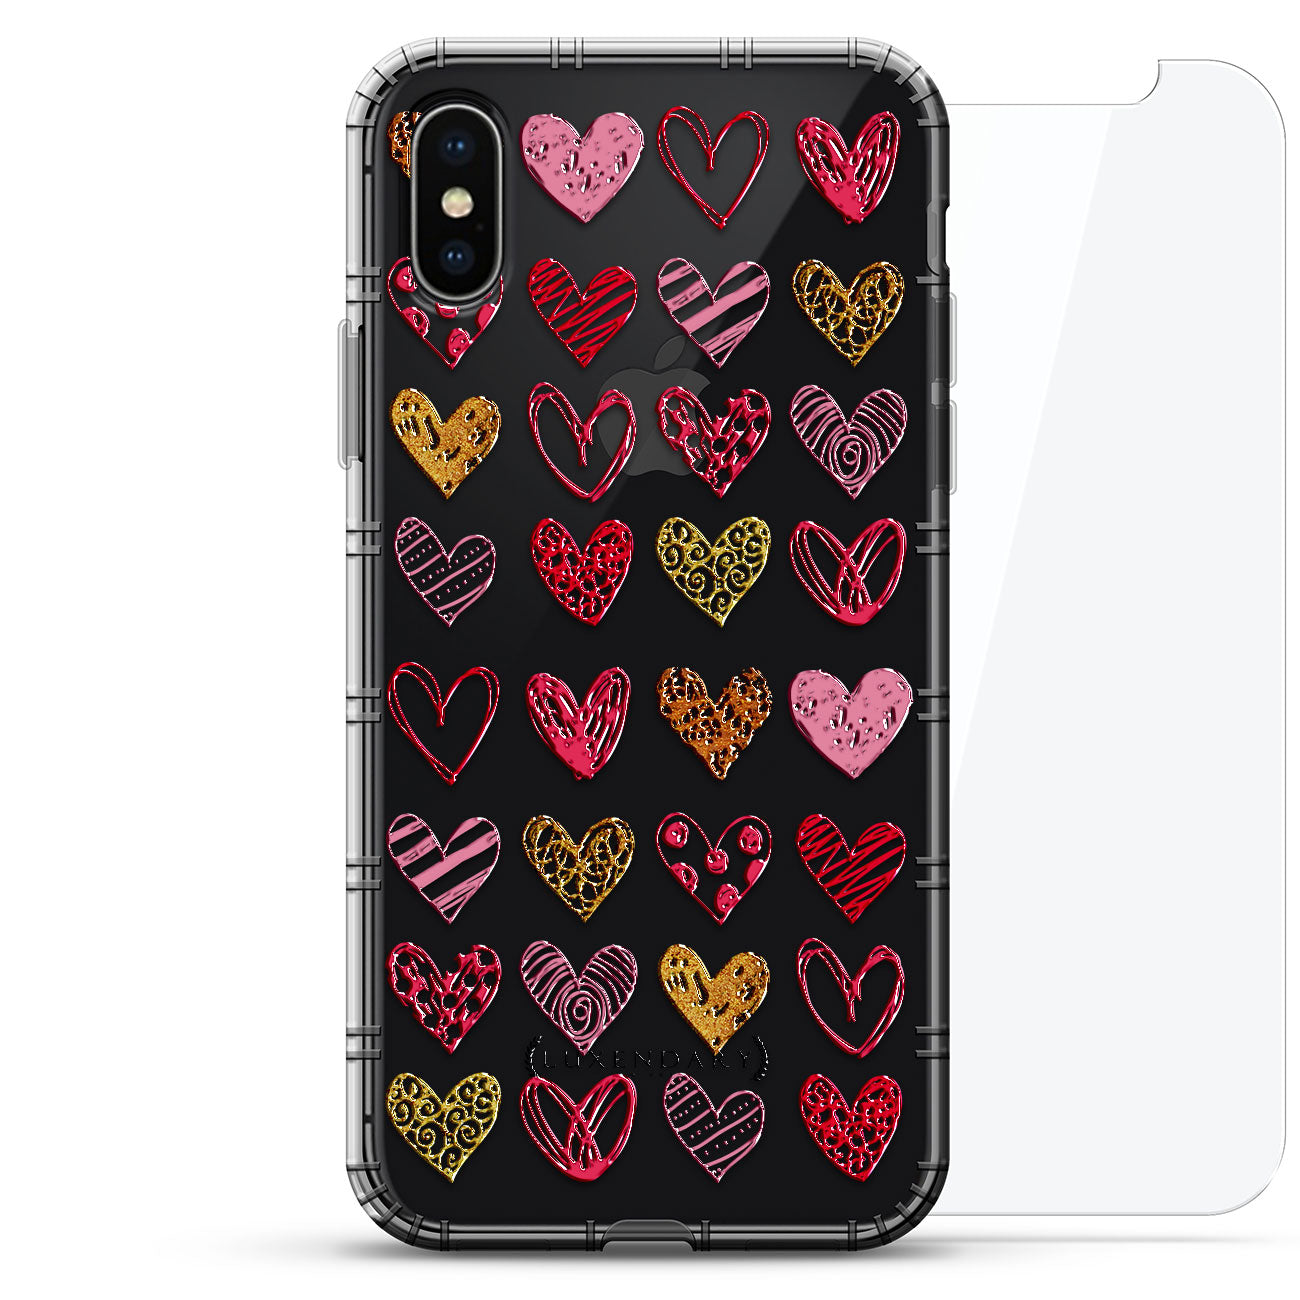 Black & White Hearts Pattern